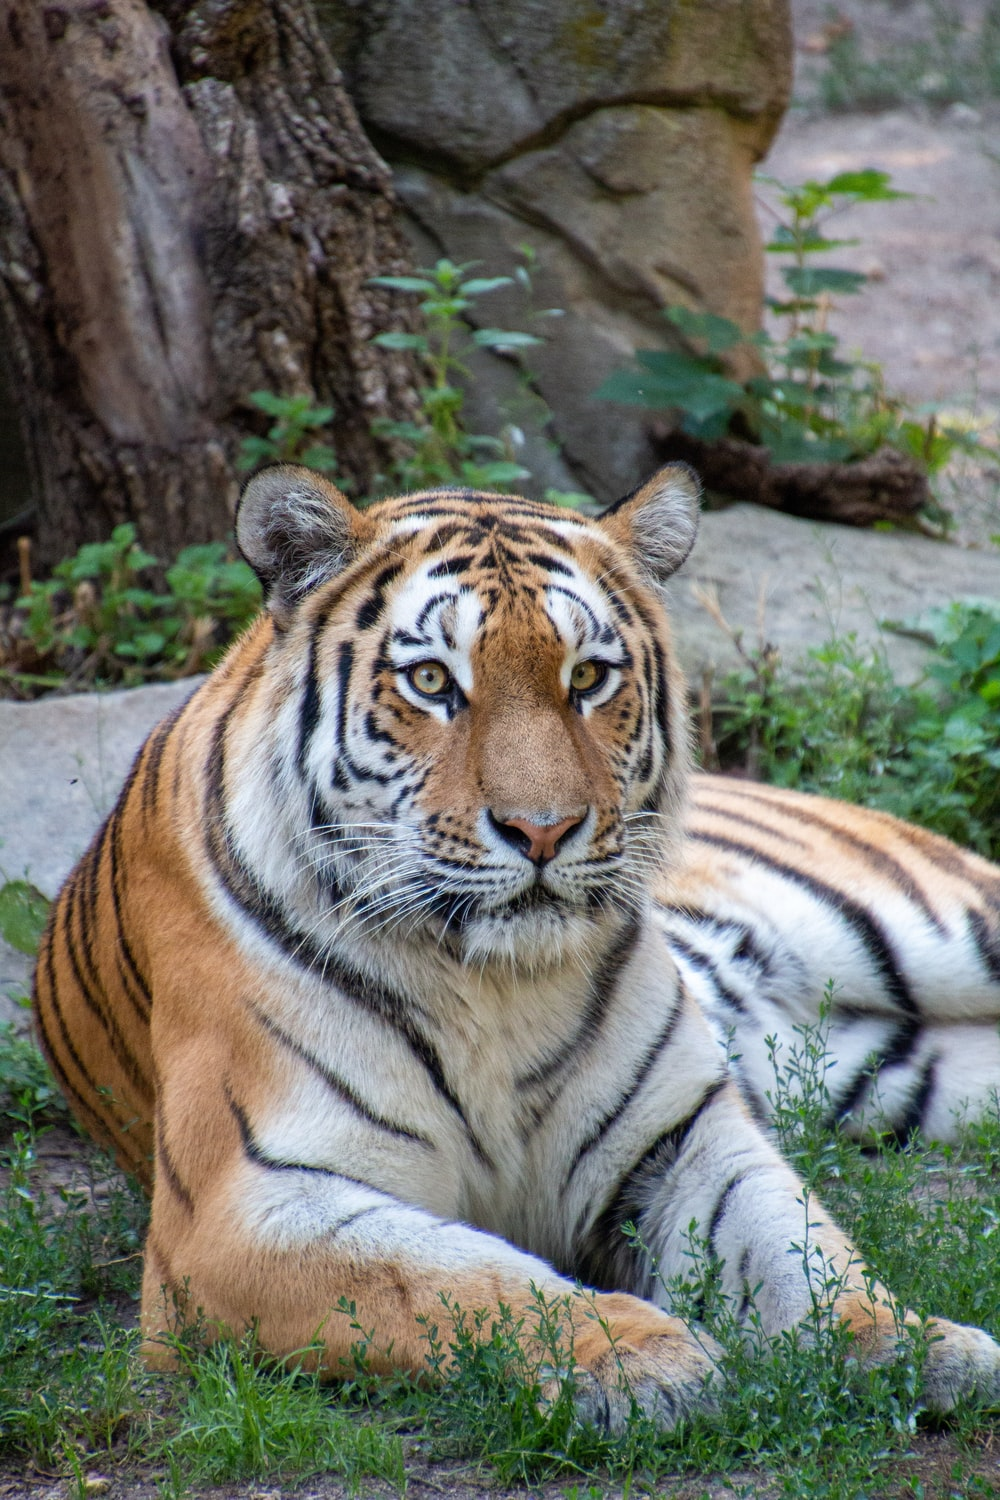 tiger lying on gray concrete floor during daytime